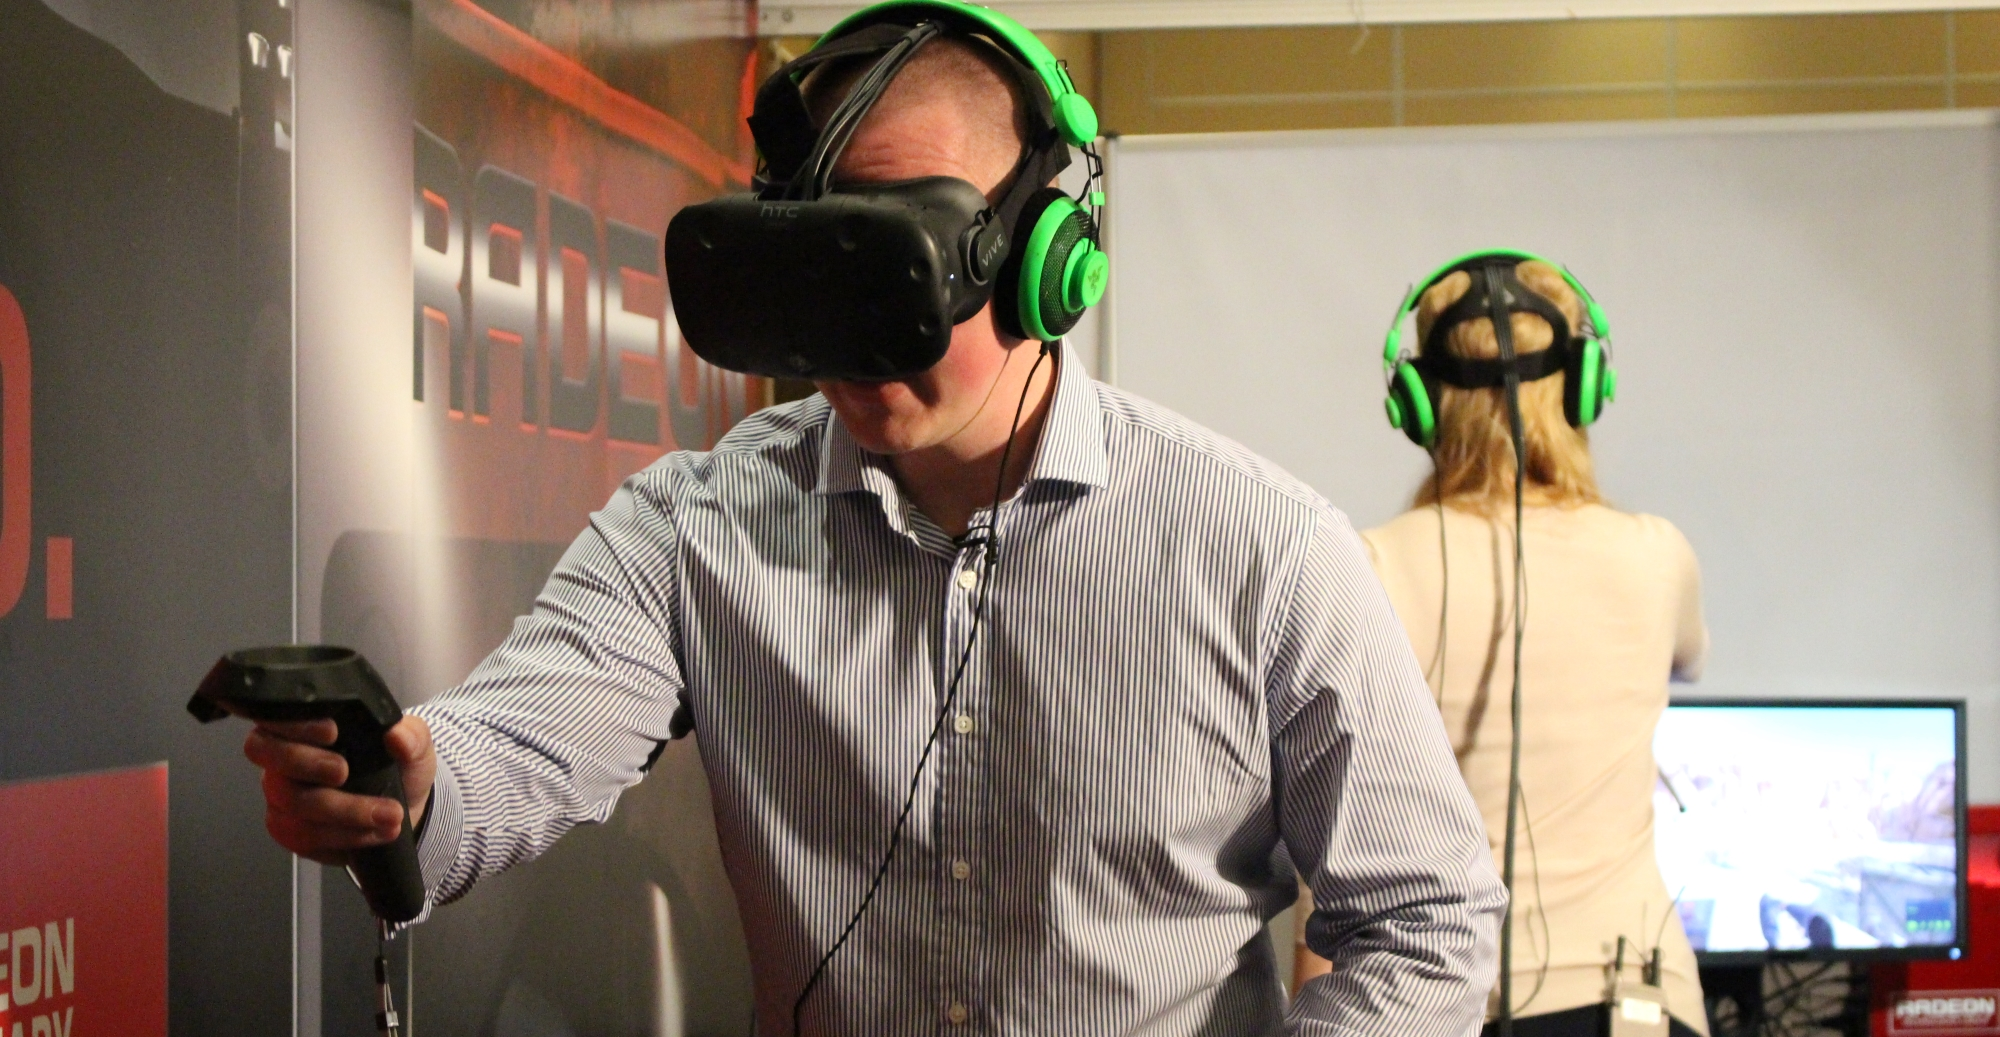 Five Things I Learned From a Day in VR